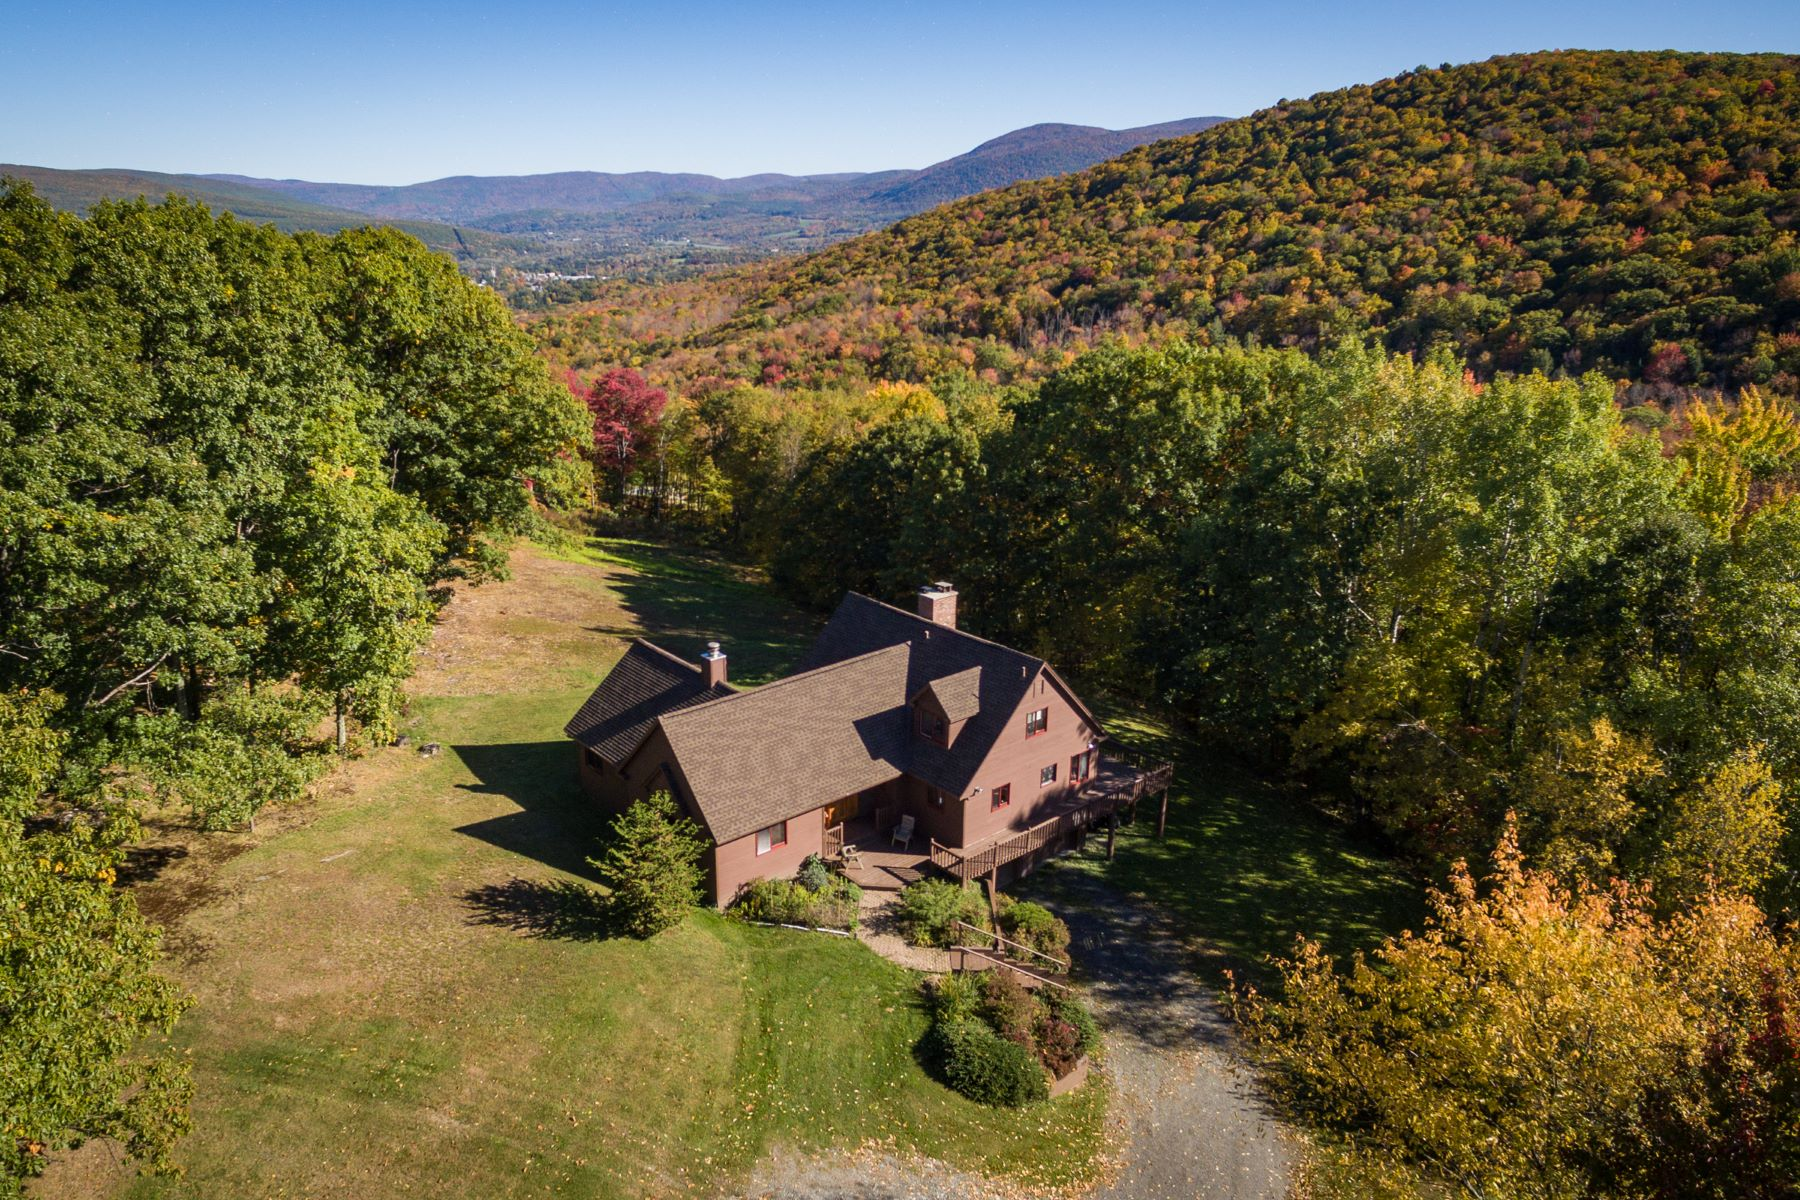 Single Family Home for Sale at Spectacular 200-Acre Parcel with Two Homes, Barn, Views Williamstown, Massachusetts 01267 United States